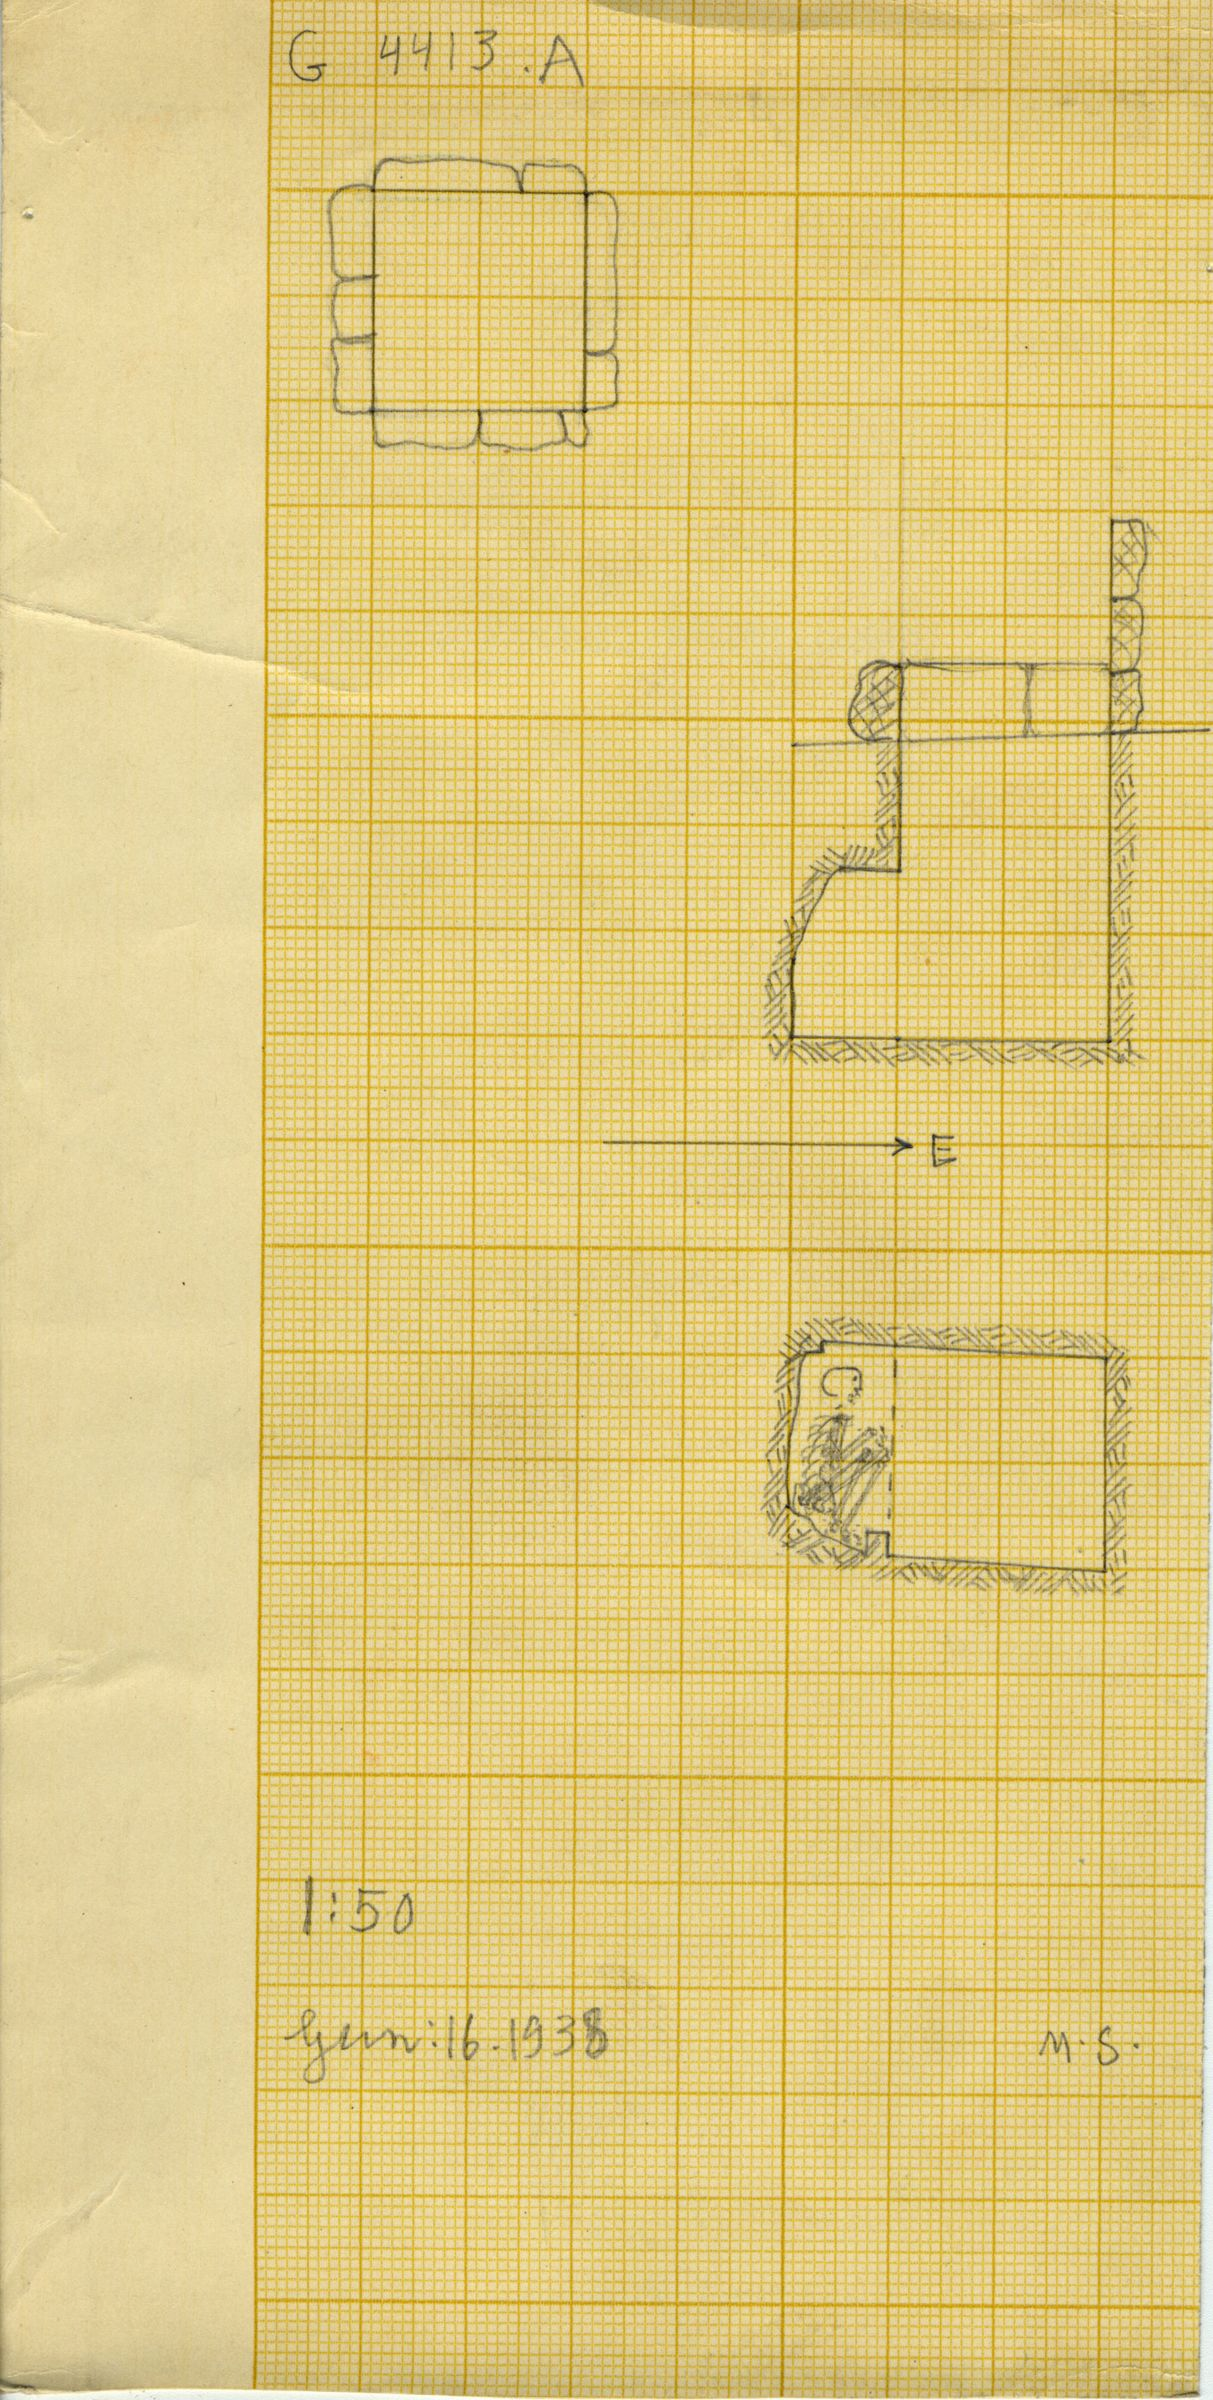 Maps and plans: G 4413, Shaft A